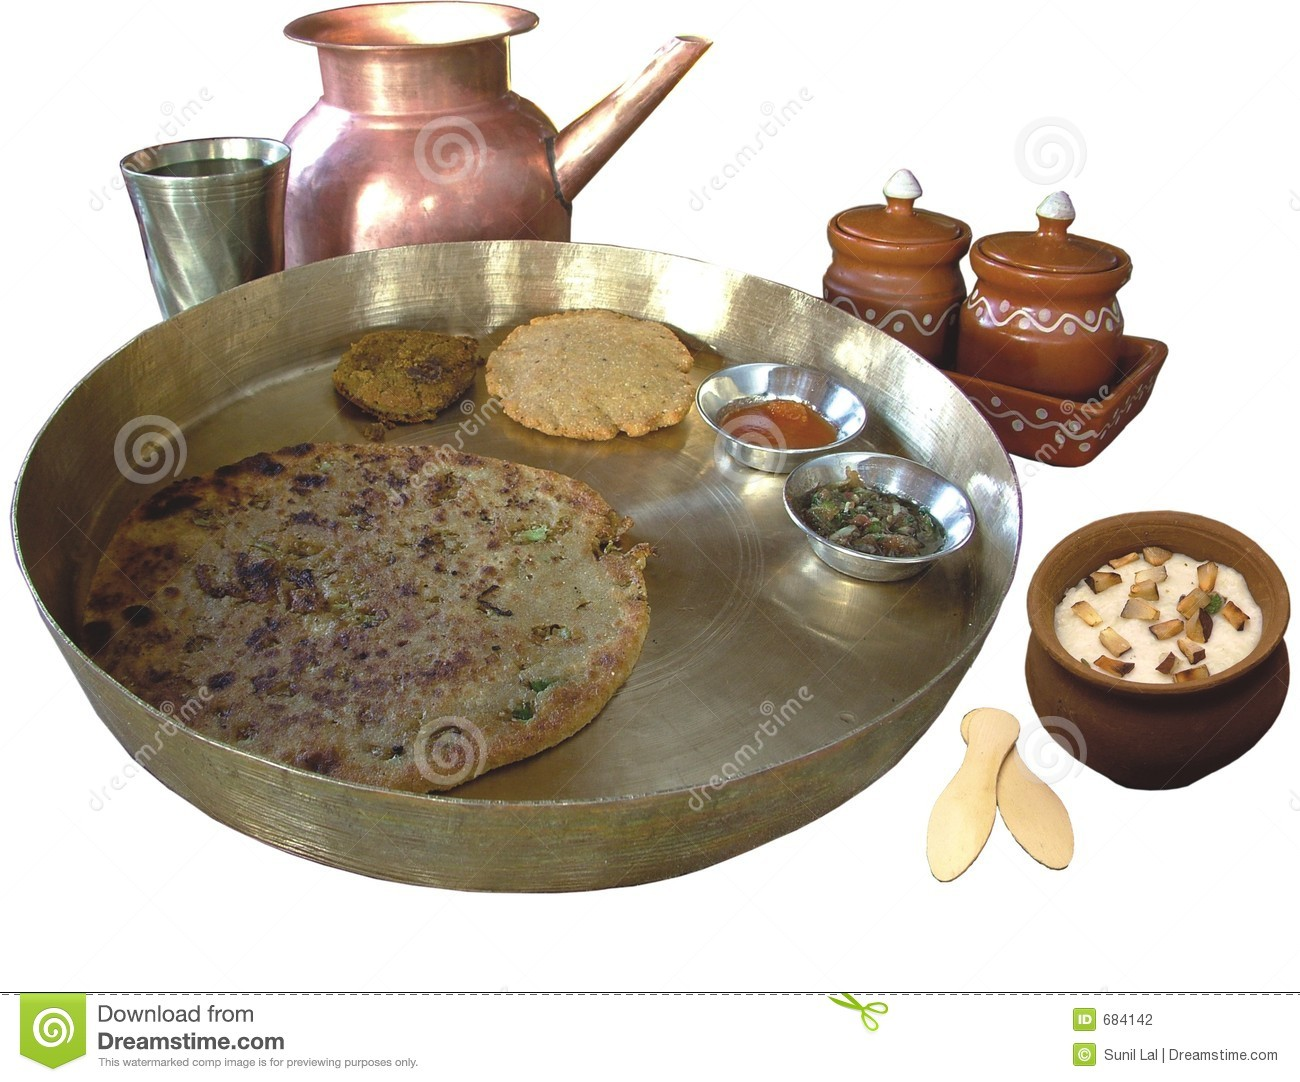 essay on indian traditional food The importance of traditional foods like bone broth, fermented foods, organ meats, healthy protein and beneficial fats for oral health, healthy weight and more.